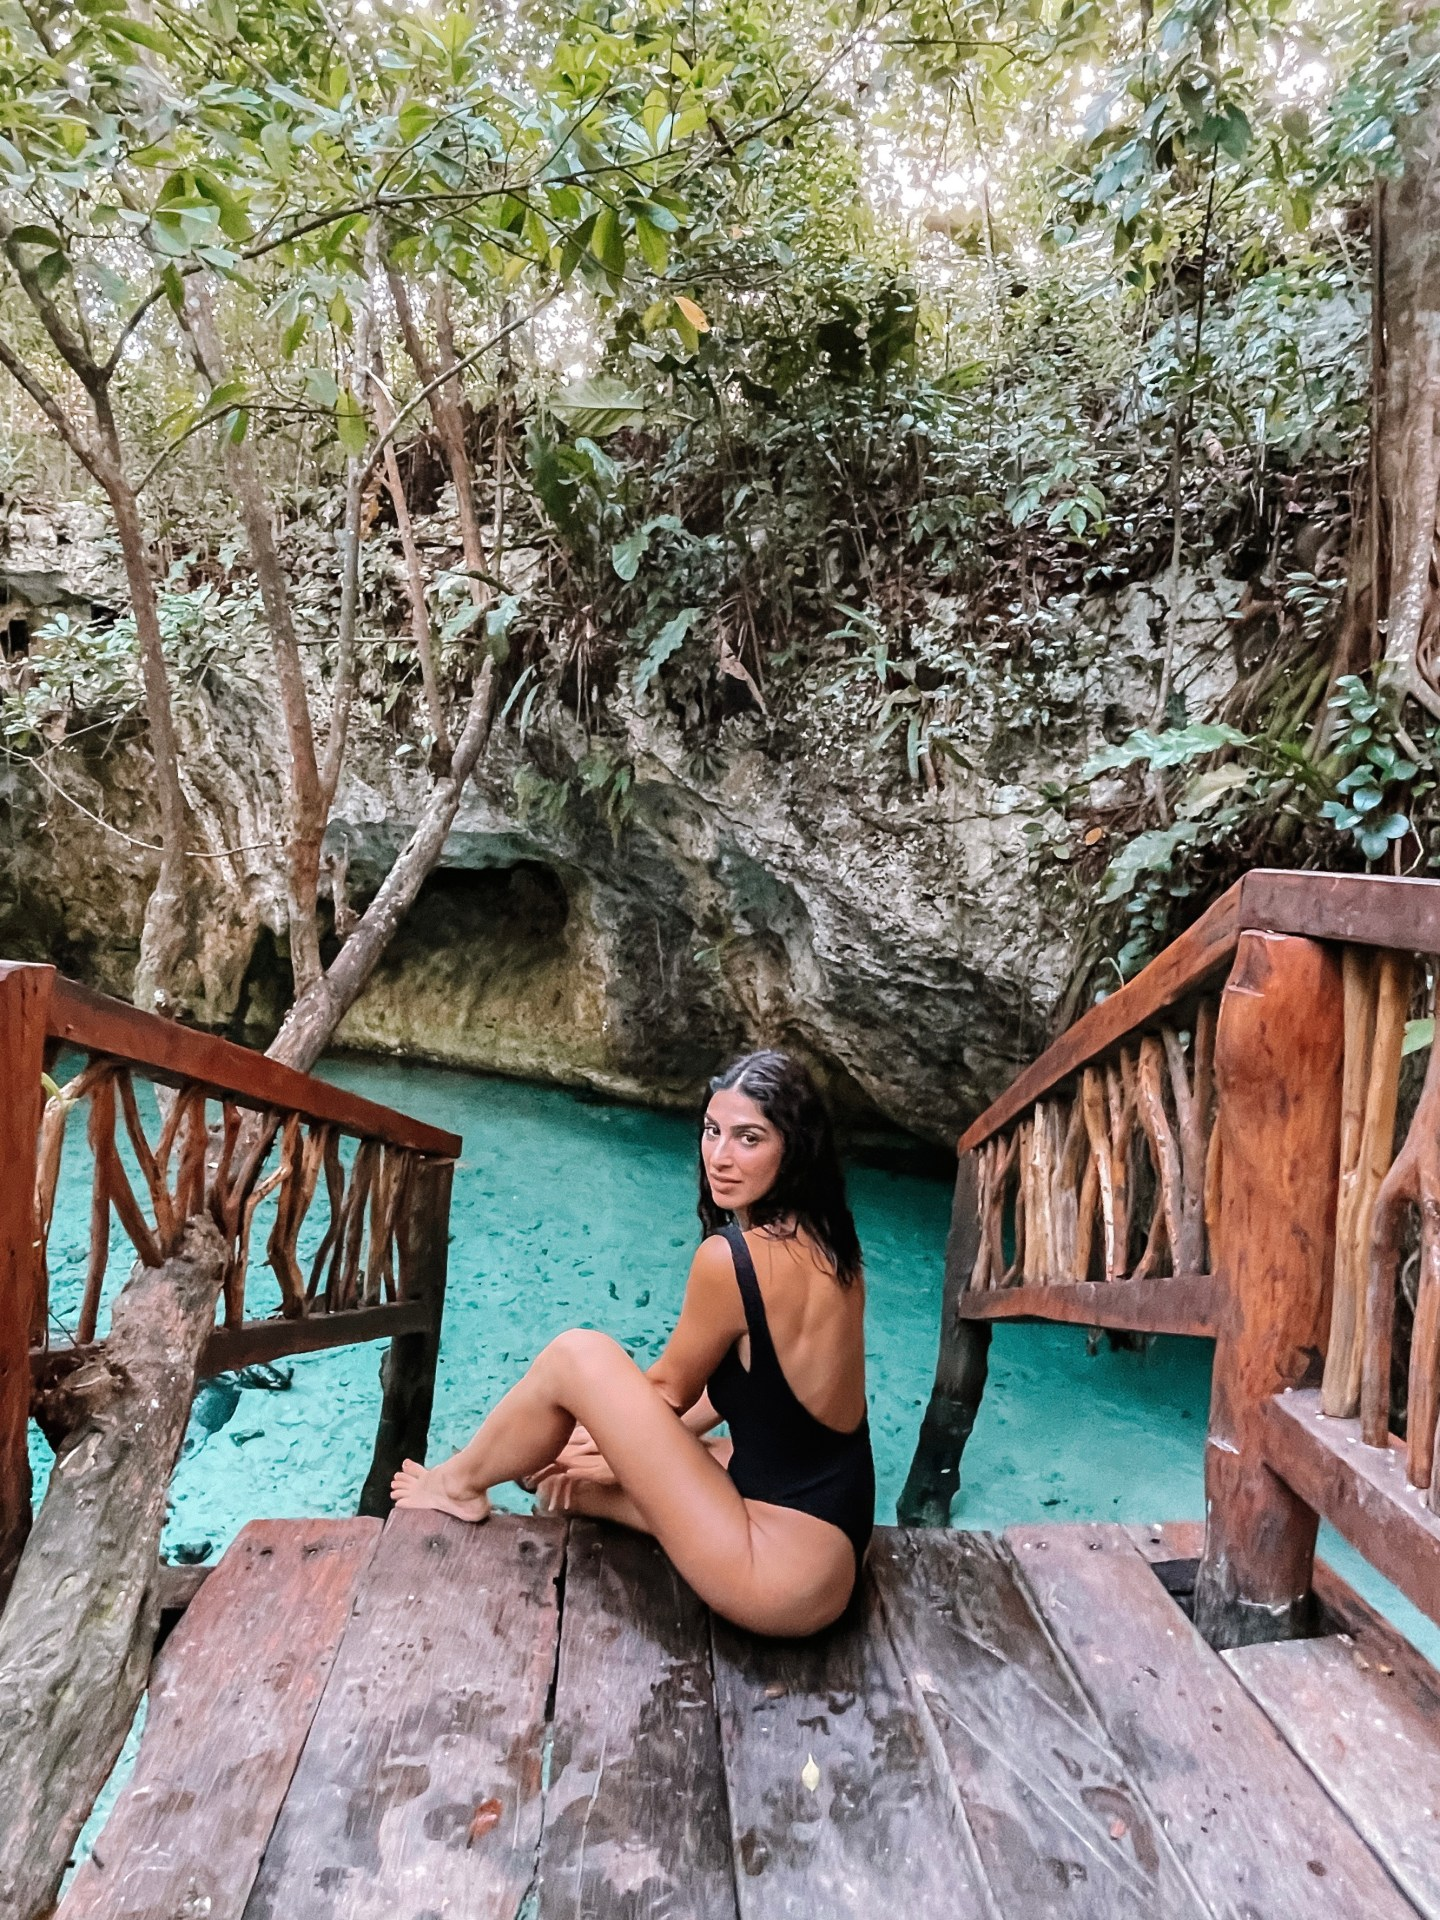 Grand Cenote Tulum. This guide gives you tips for all of the best cenotes in Tulum and the best cenotes near Tulum including what to pack for the best Tulum cenotes and more. If you are looking for day trips from Tulum, check out the best cenotes in Quintana Roo and best cenotes in Yucatan for ideas! | Tulum cenotes photography | cenotes Mexico tulum | cenotes tulum riviera maya | best cenotes in quintana roo | cenotes quintana roo | cenotes in playa del carmen